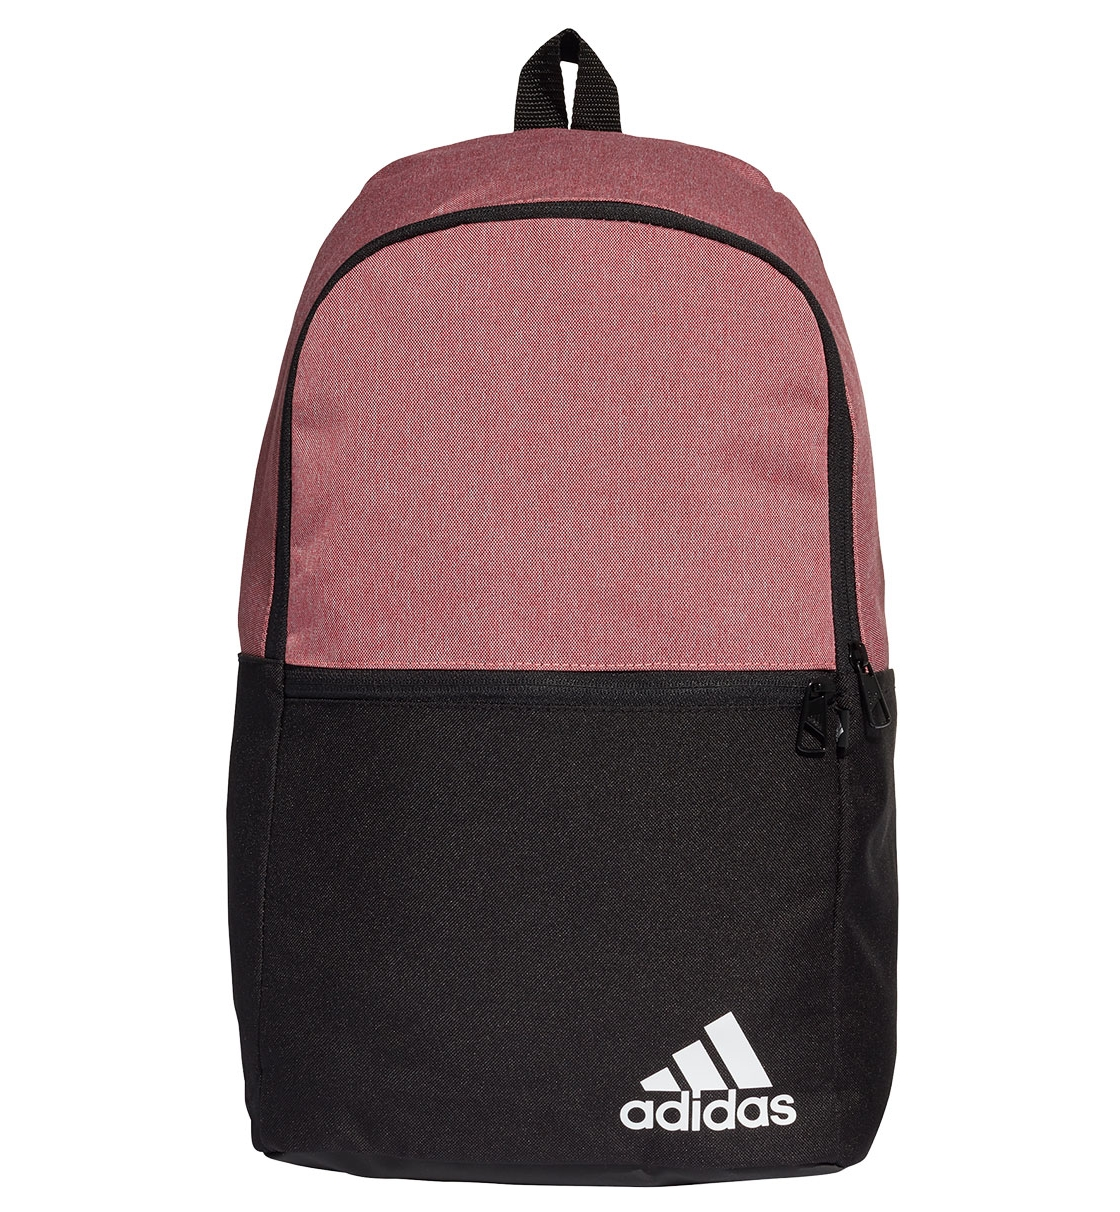 adidas Σακίδιο Πλάτης Ss21 Daily Backpack Ii GN1976